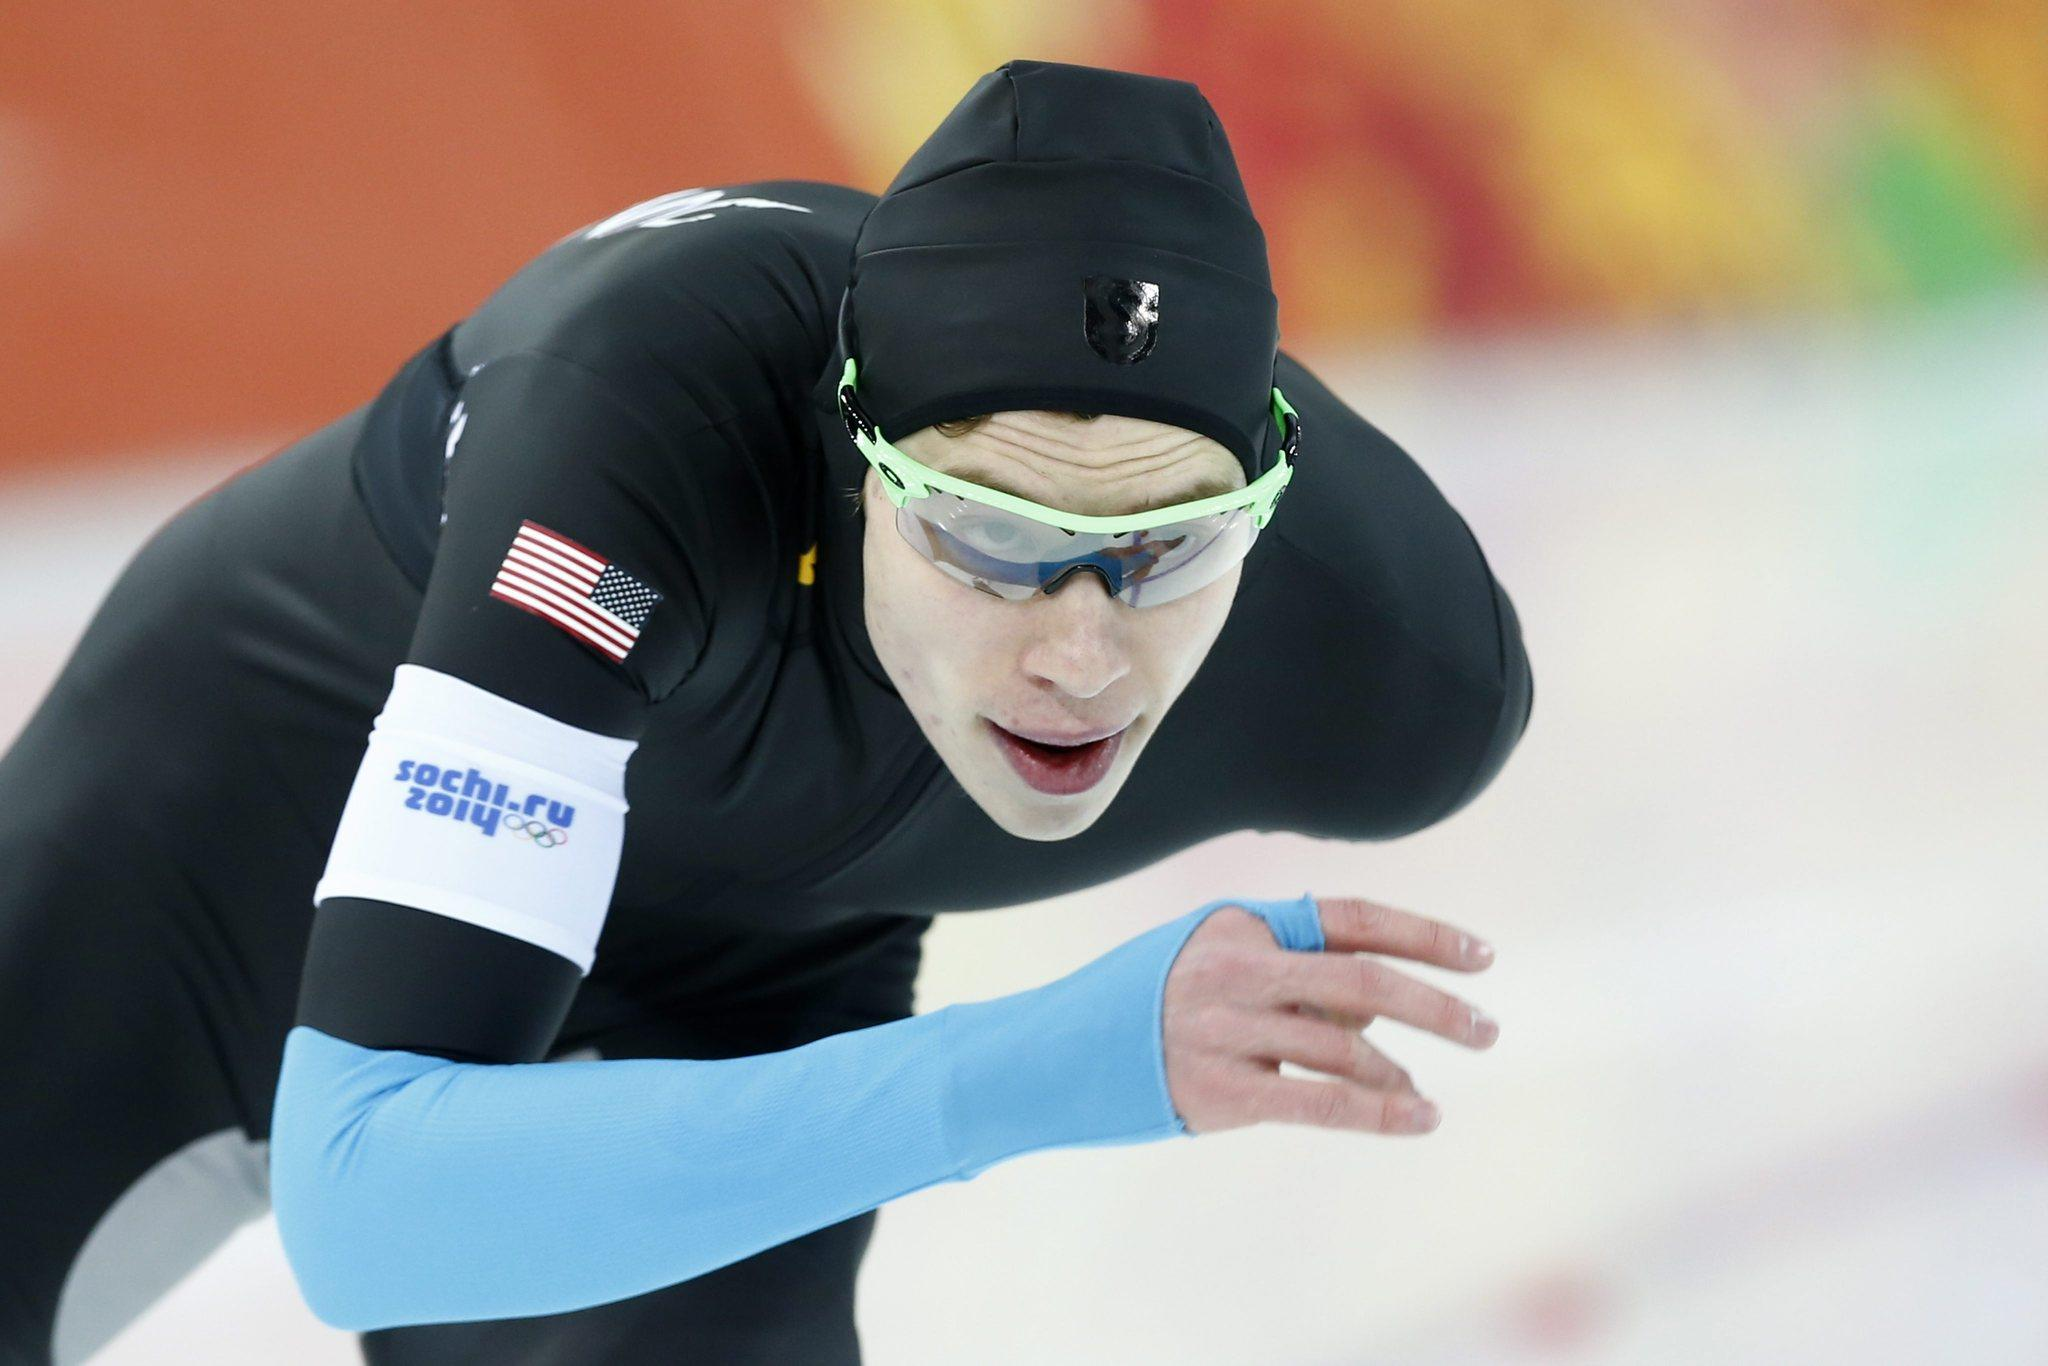 Brian Hansen during the 1,500-meter race in the Adler Arena at Sochi.